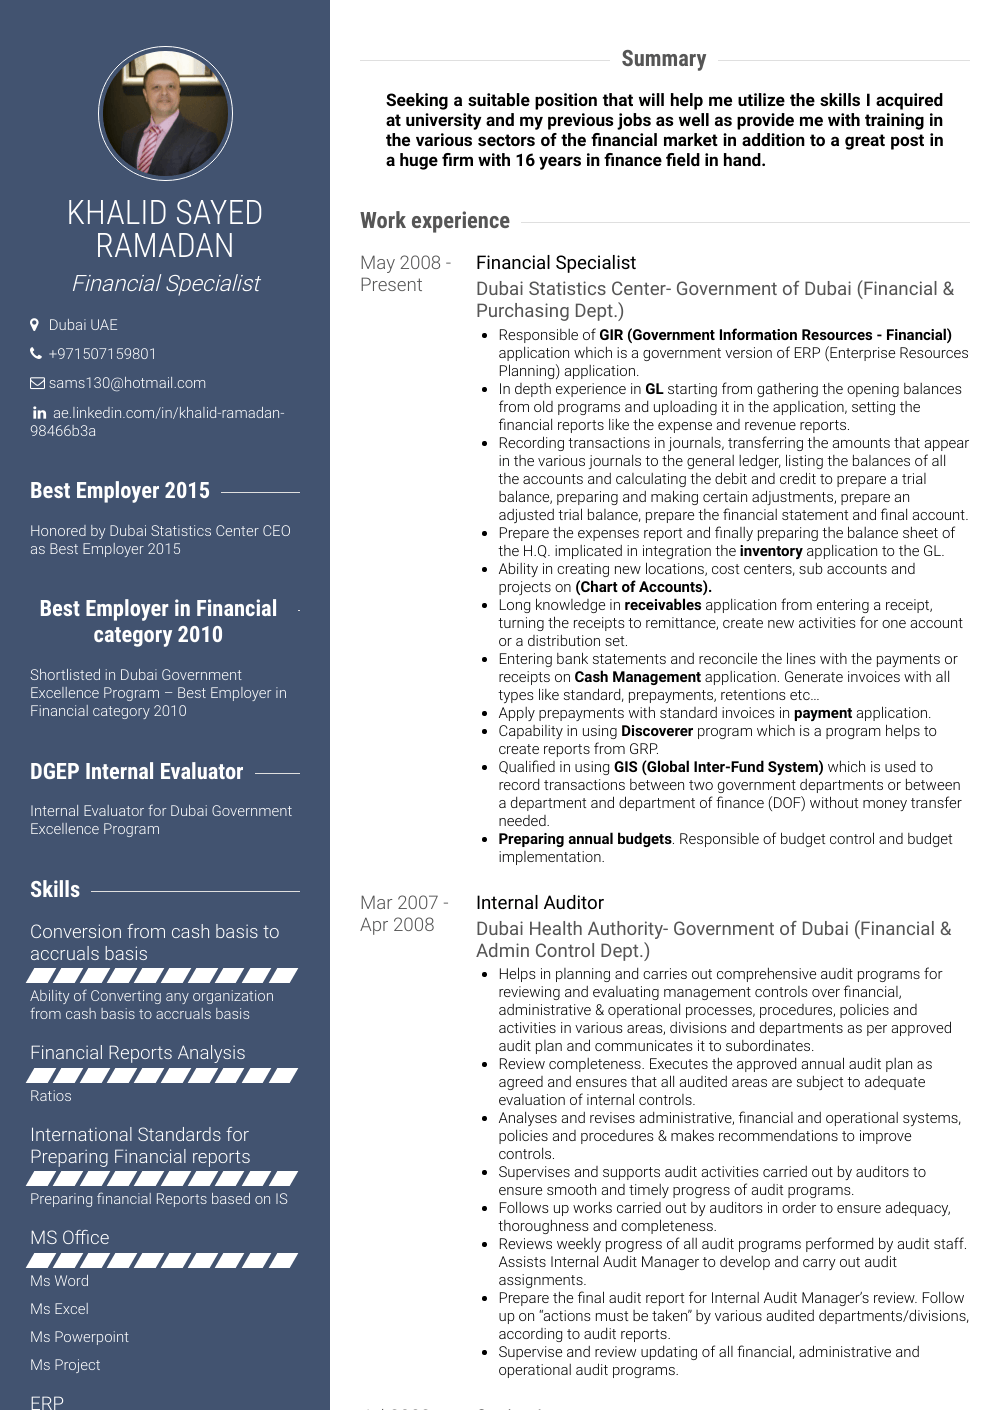 Financial Specialist Resume Samples Amp Templates Visualcv